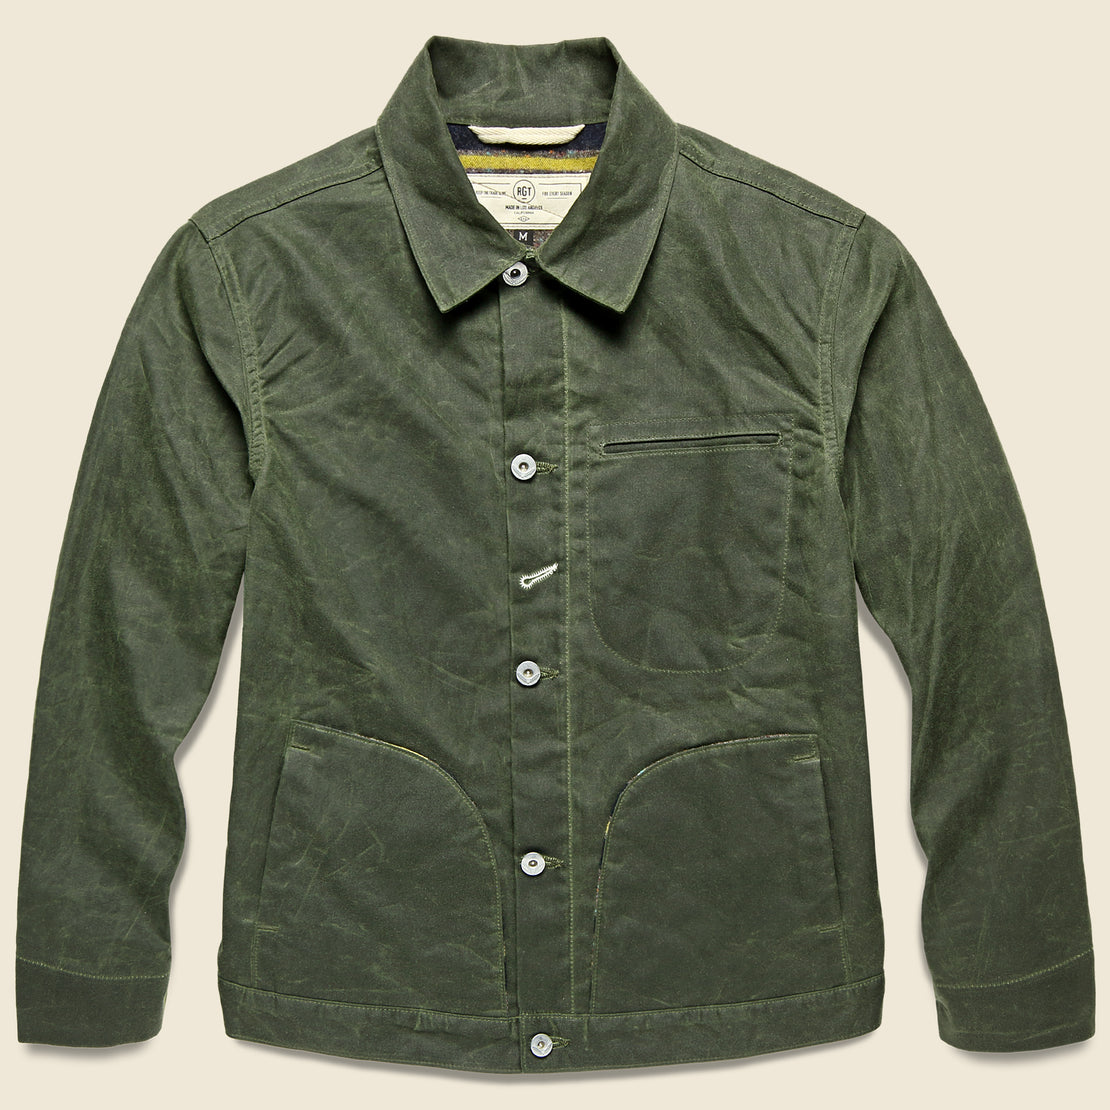 Supply Jacket - Blanket Lined Waxed Olive Ridgeline